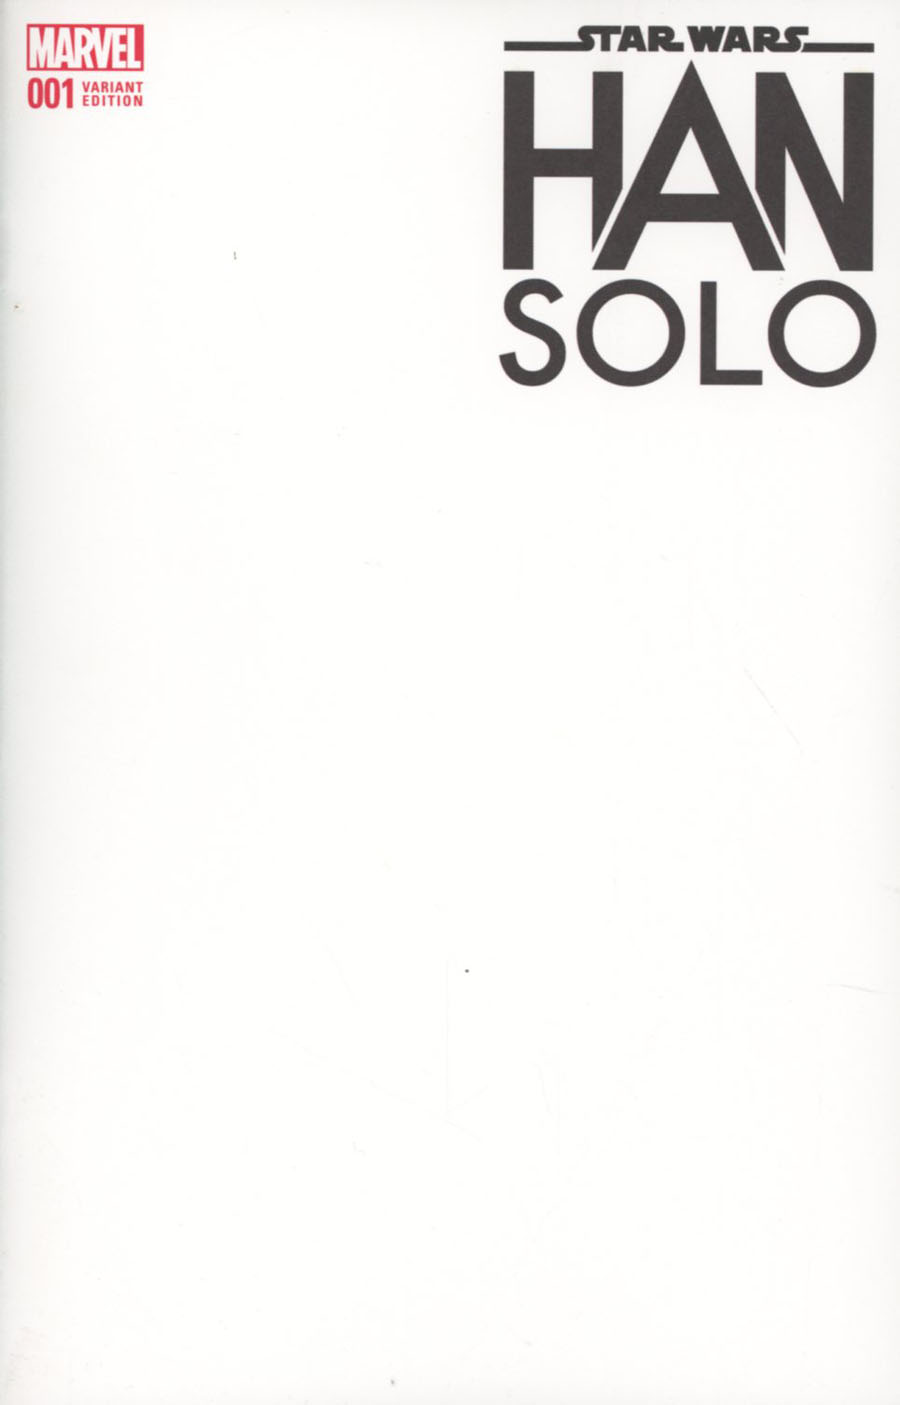 Star Wars Han Solo #1 Cover C Variant Blank Cover